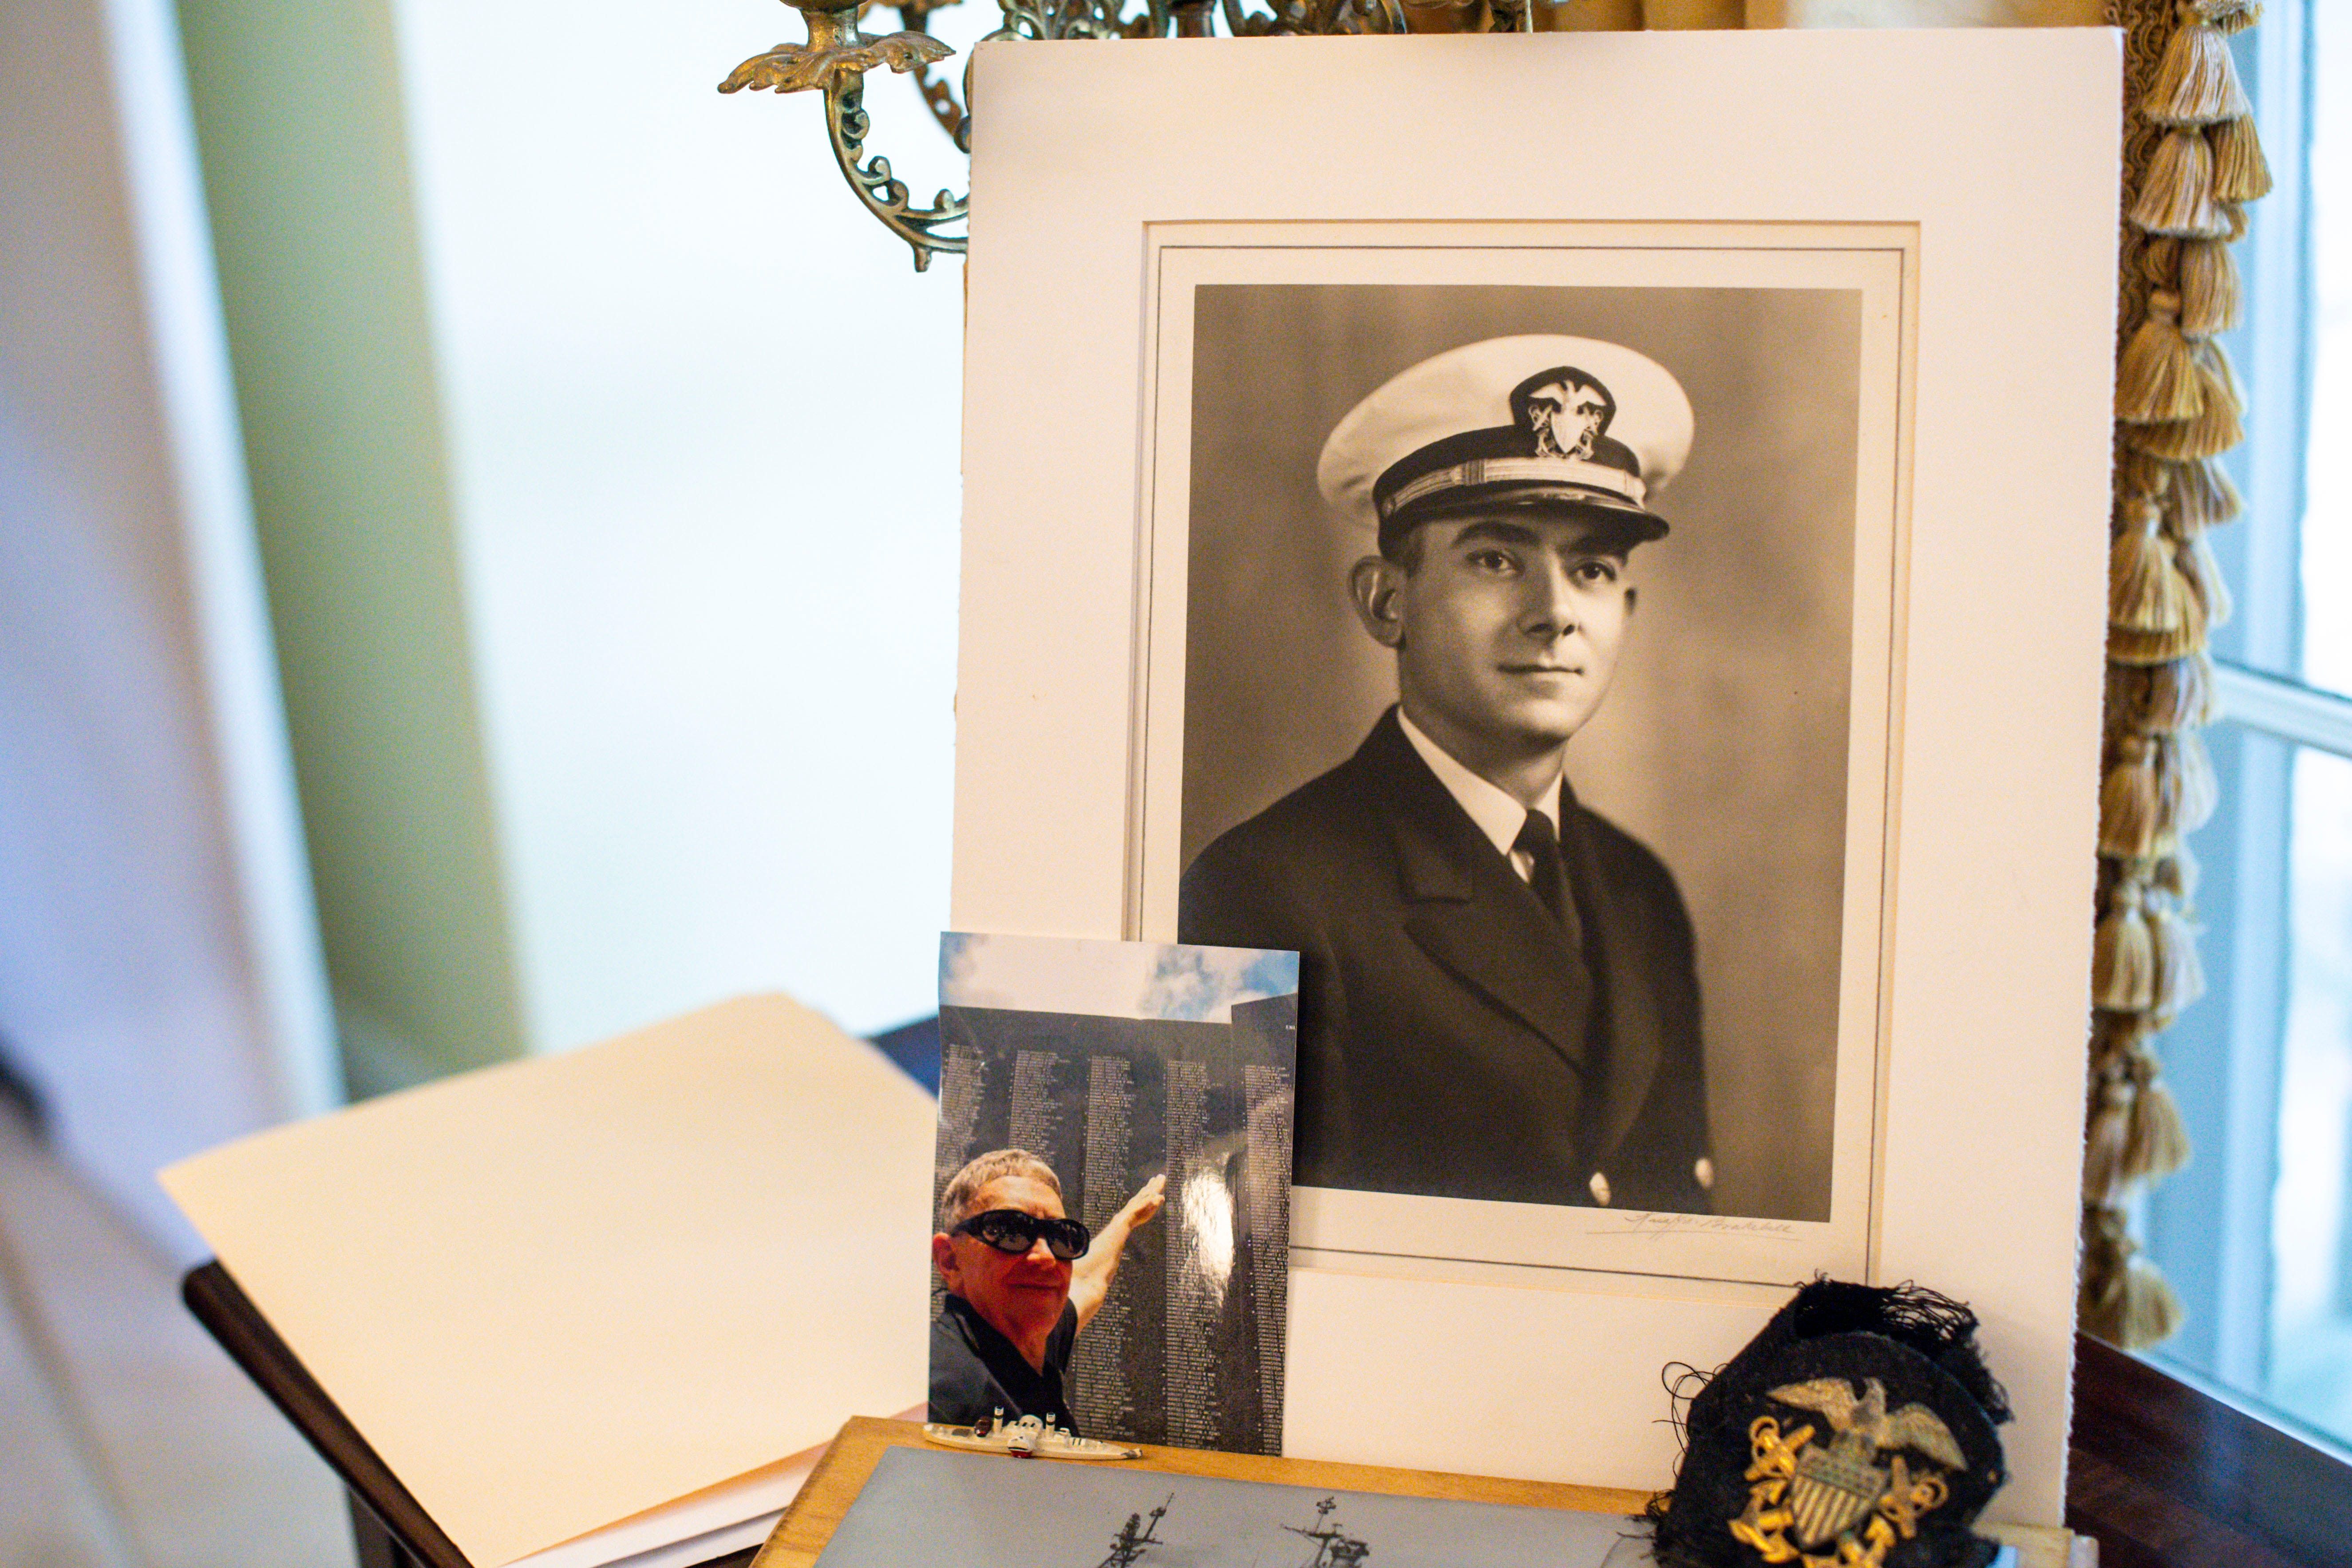 A photo of Earl Henry Sr., the ship dentist for the USS Indianapolis, is seen on display in the Belle Meade home of his son Earl Henry Jr. on Monday, July 19, 2021.